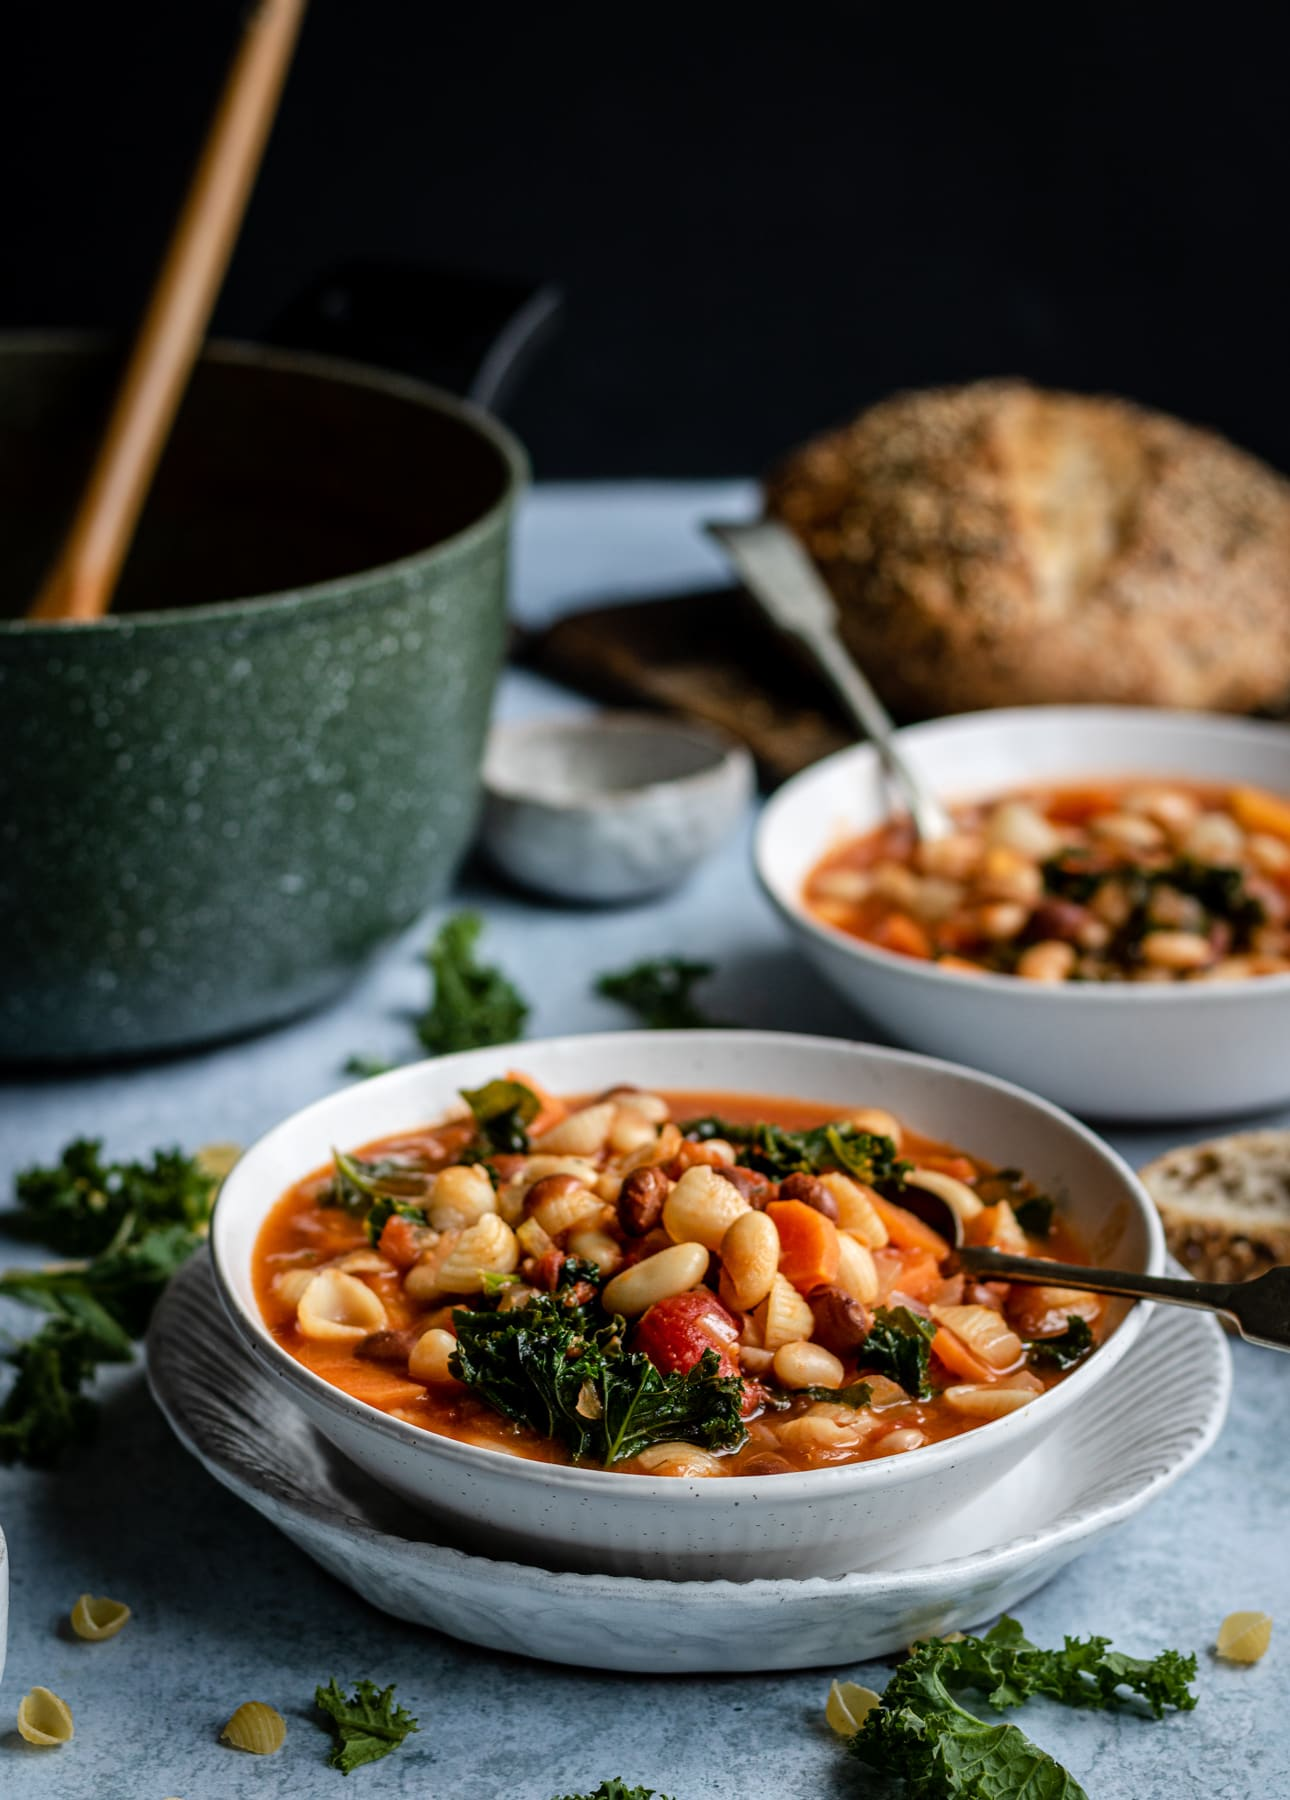 minestrone with kale and beans in bowls with bread